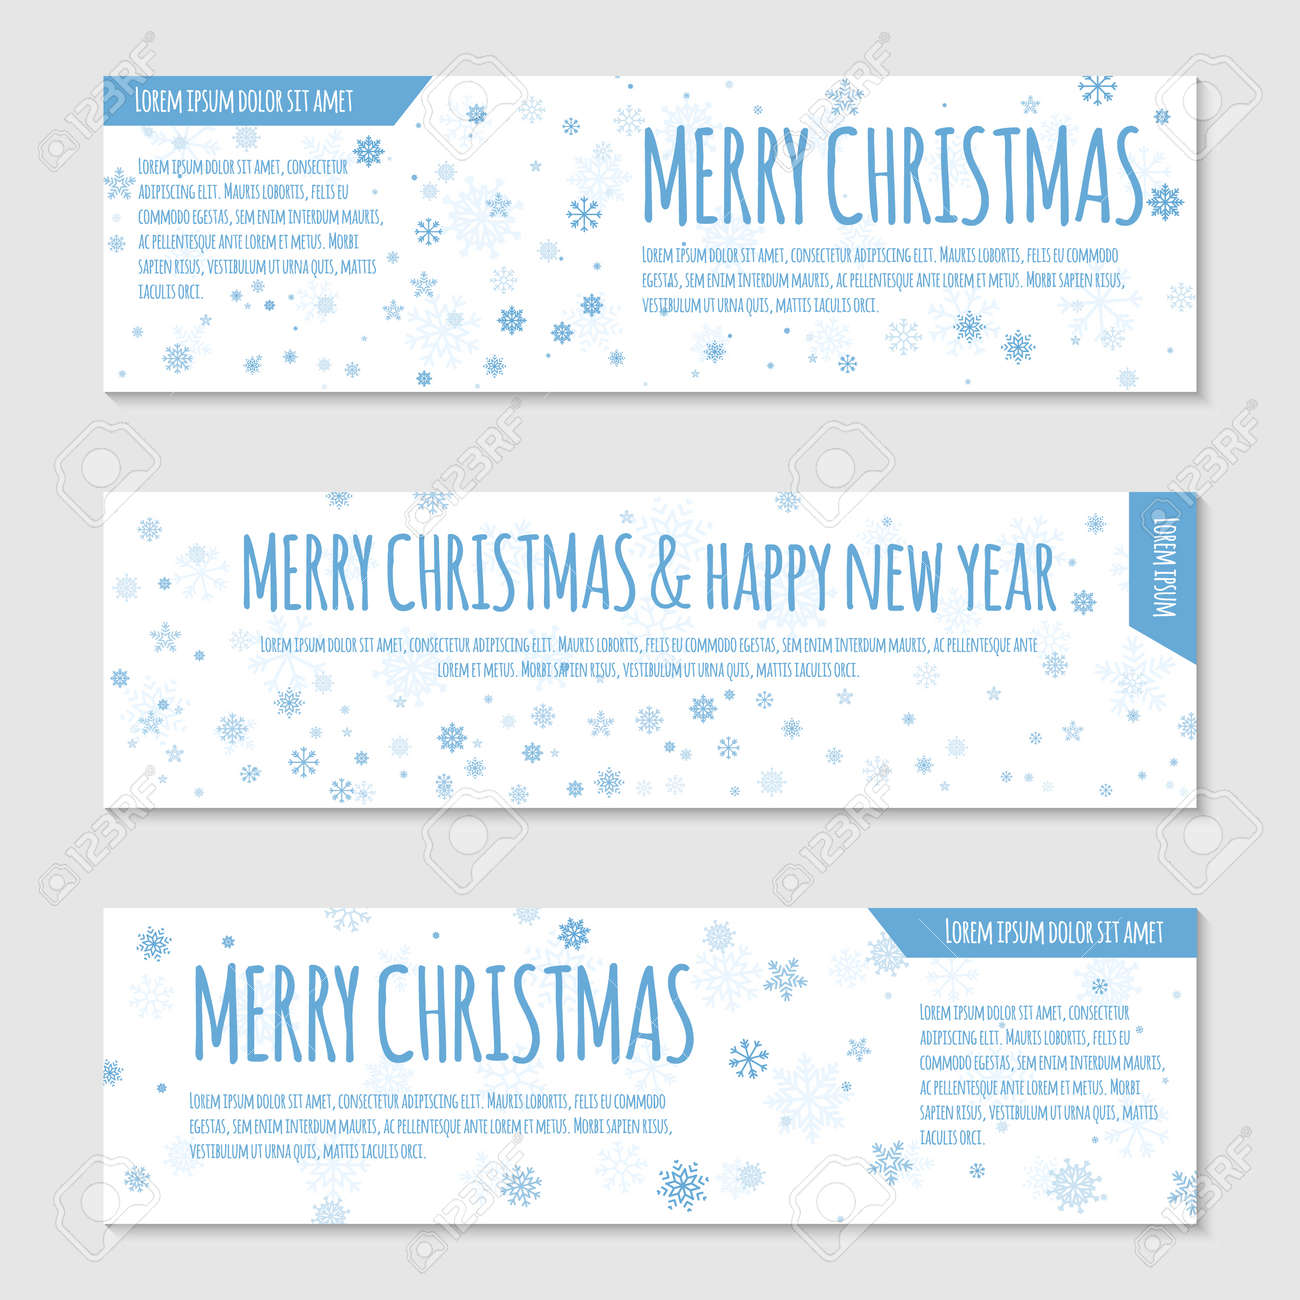 Vector banner or flayer template. Blue snowflakes on white background. Can be used for web design, certificate, gift card, voucher, store, present, shopping, flyer, greeting - 48781634